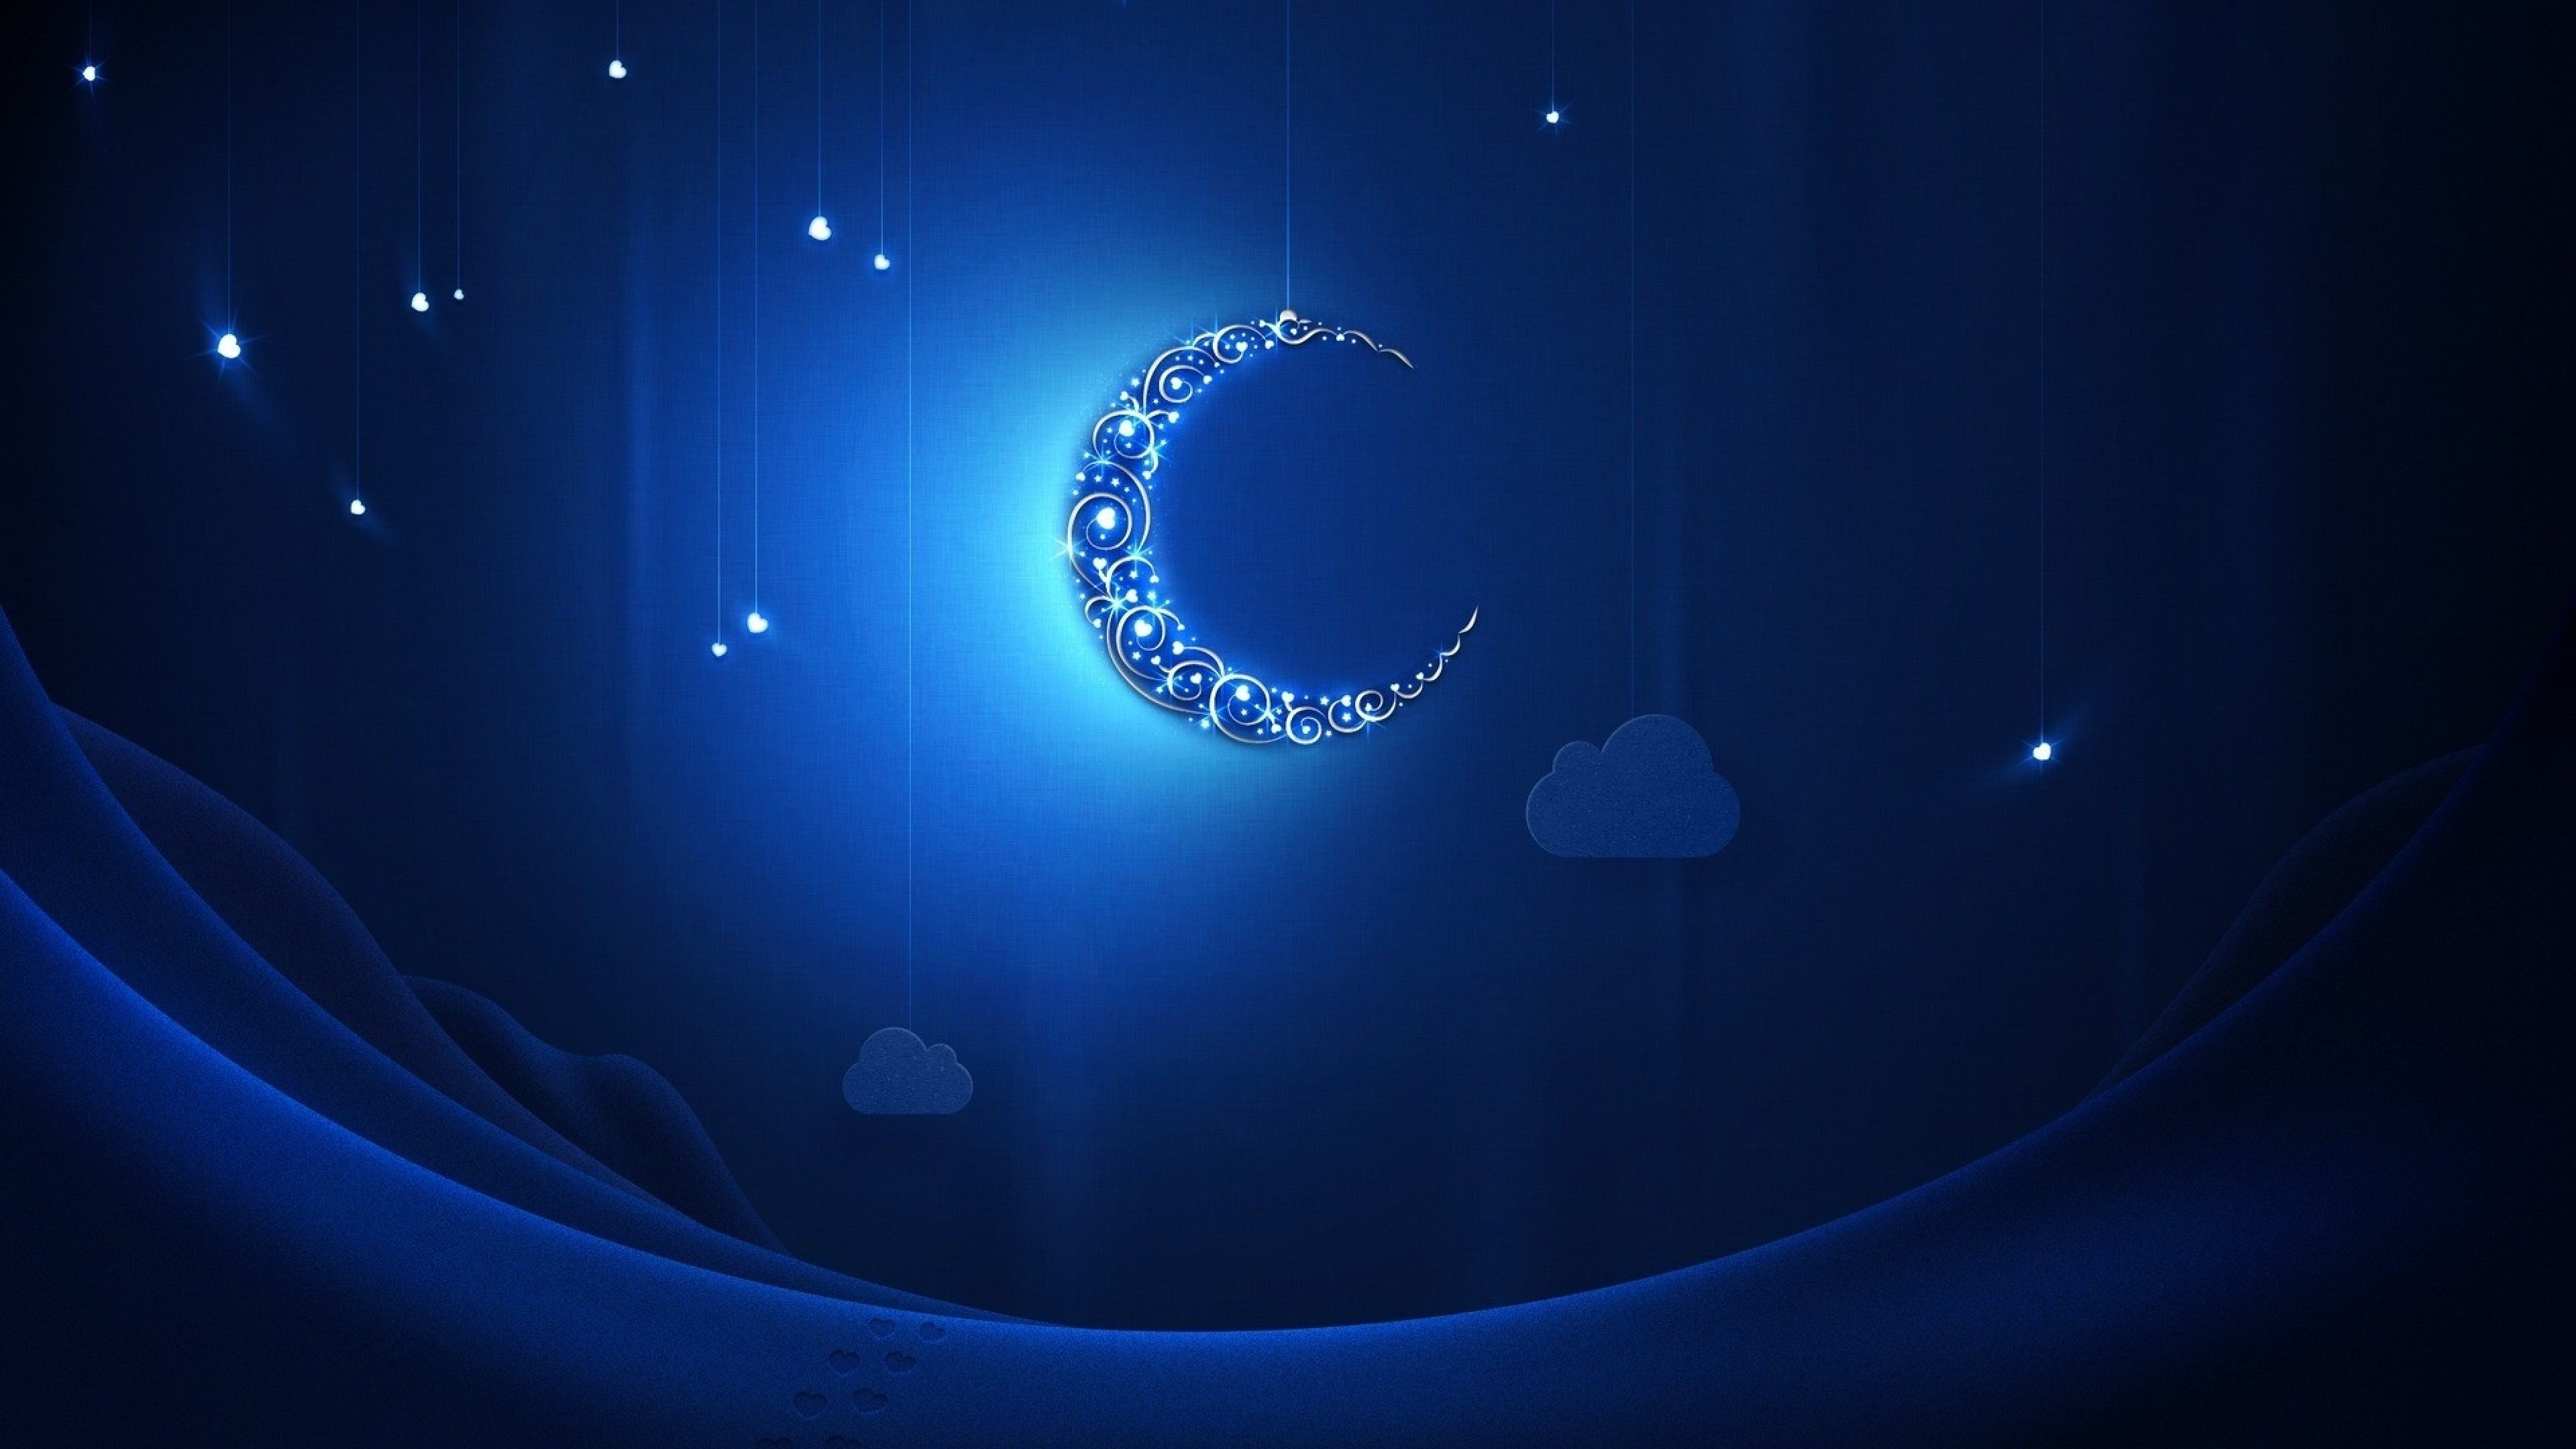 3840x2160  Wallpaper crescent moon, light, shiny, neon